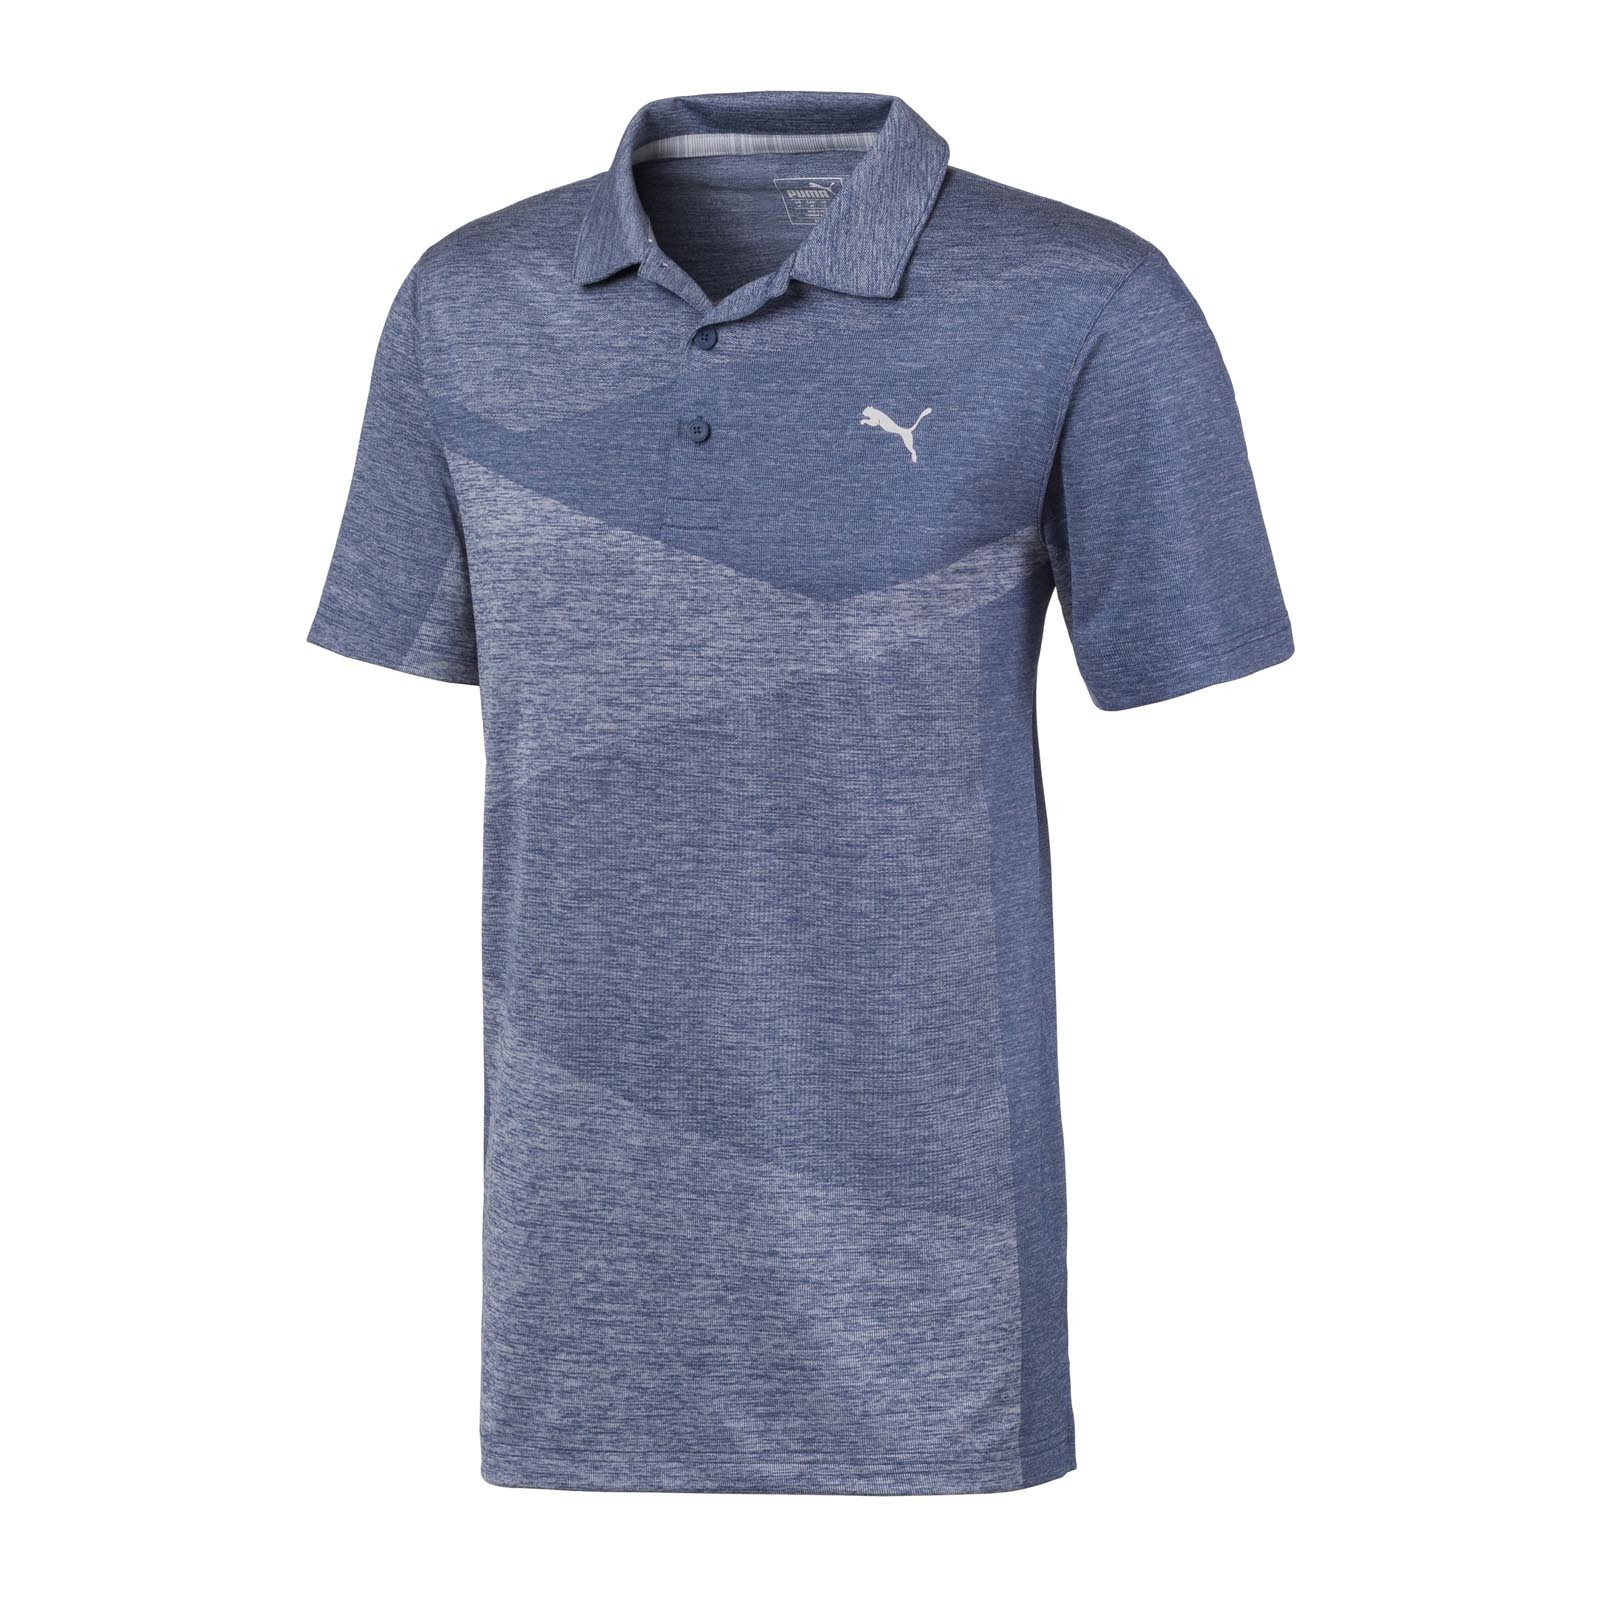 Puma Alterknit Jacquard Polo Shirts